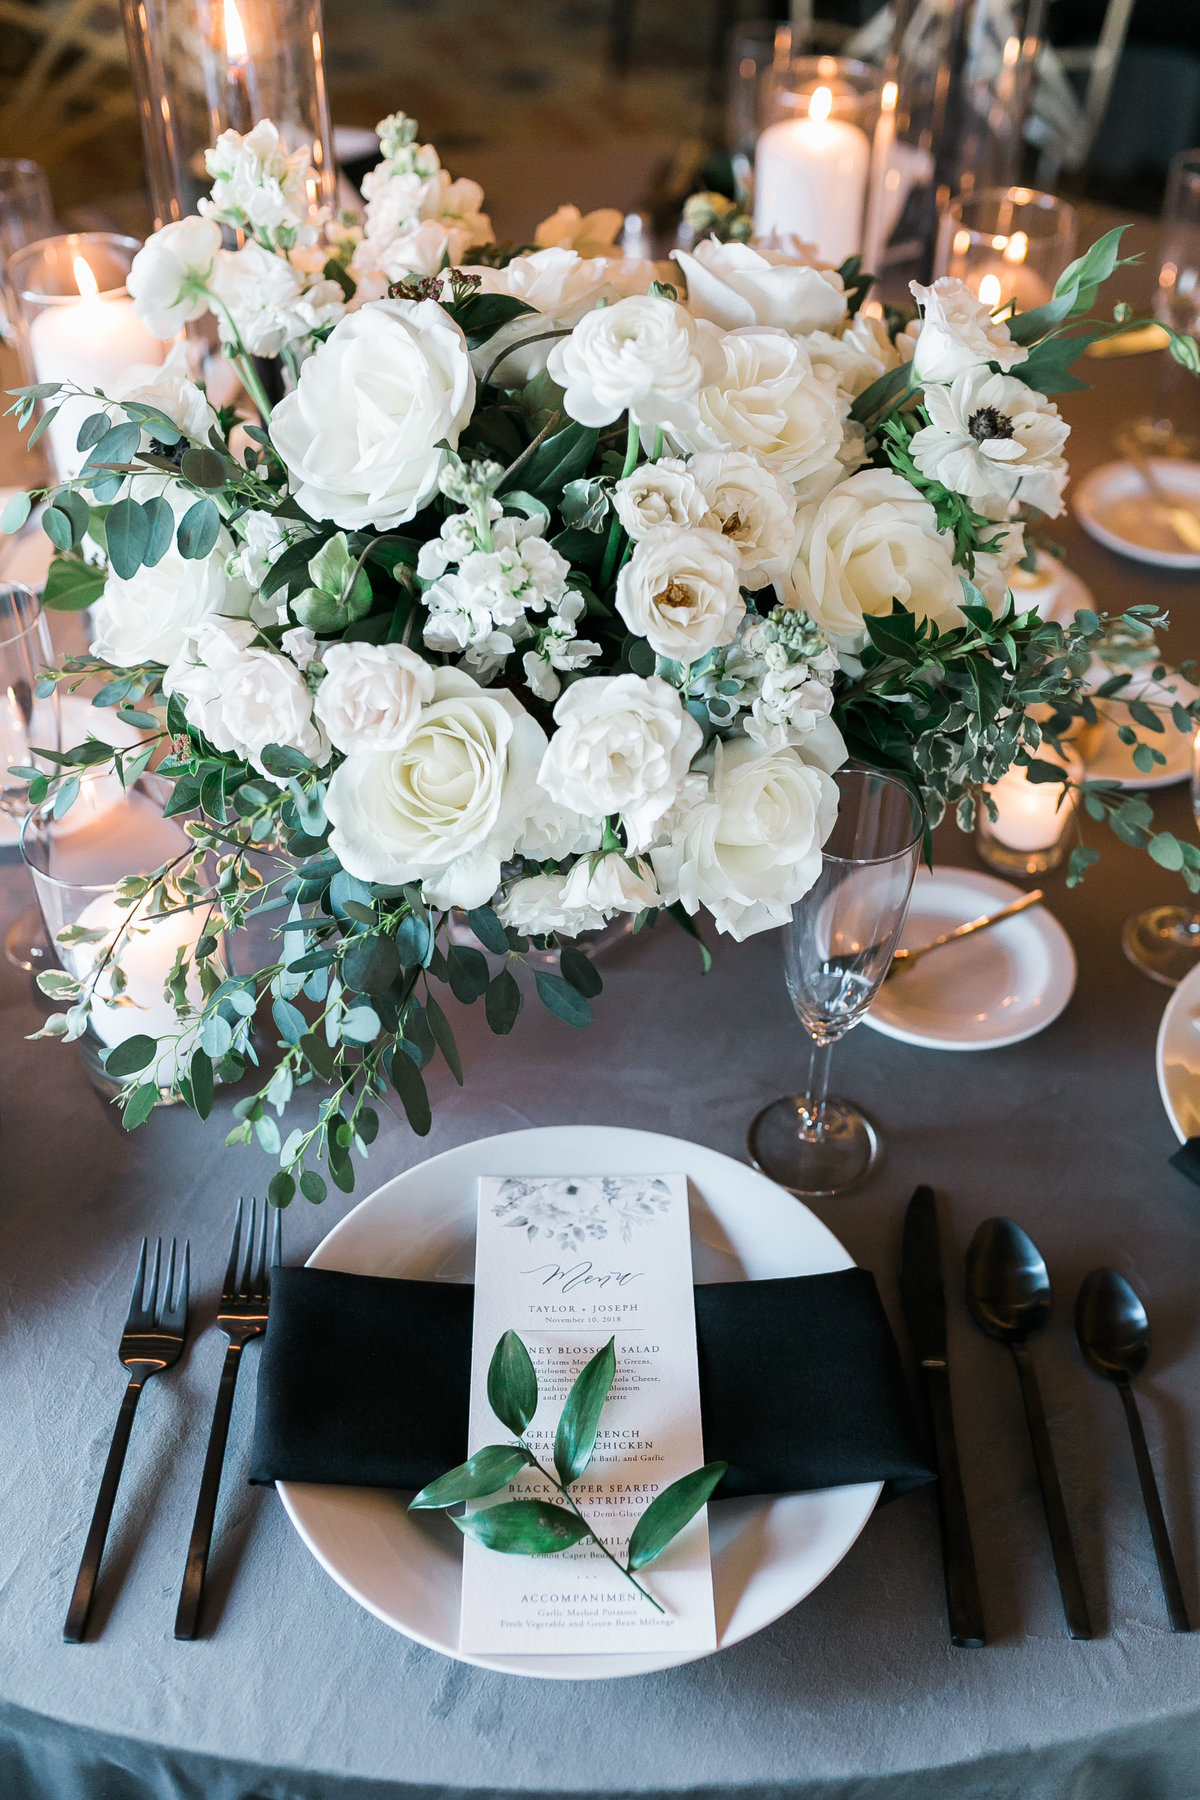 wedding tablescape with grey velvet linen and  black flatware with white and green floral centerpiece